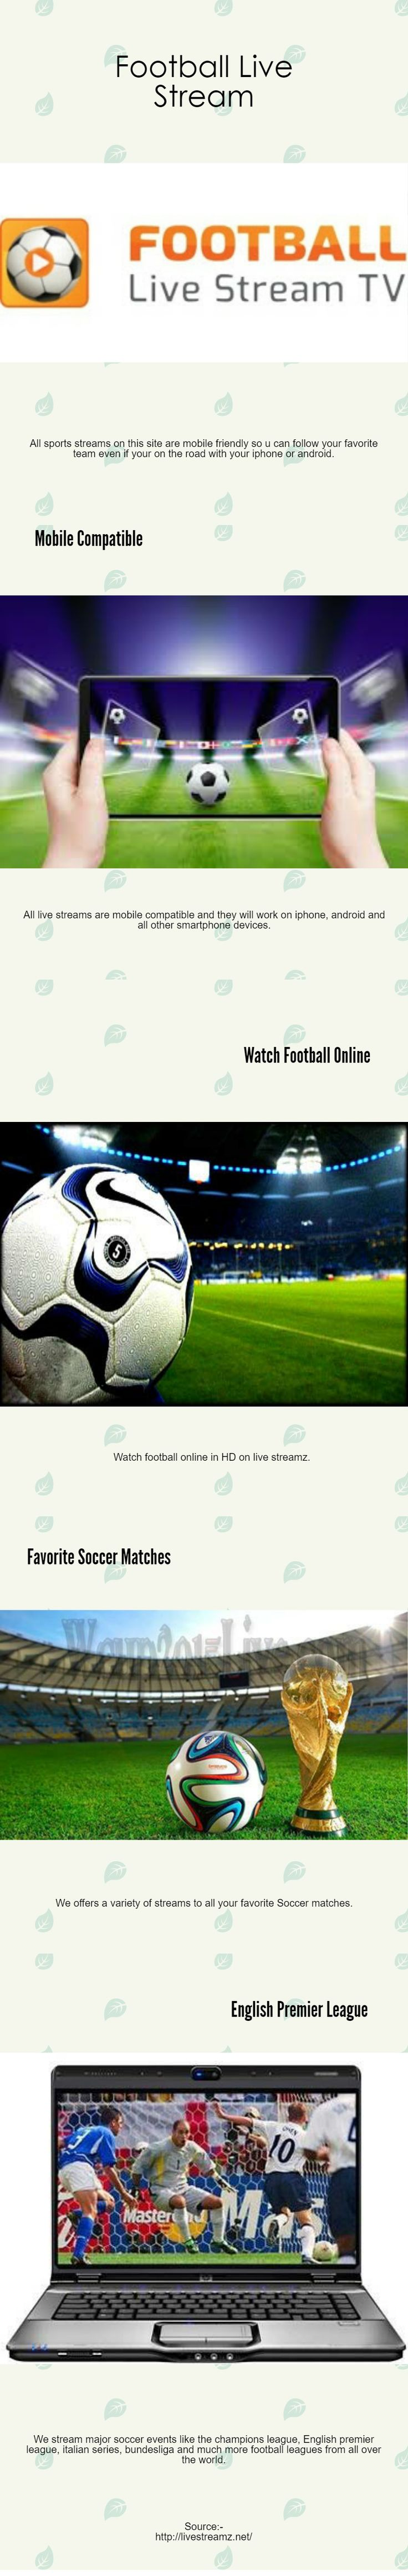 All sports streams on this site are mobile friendly so u can follow your favorite team even if your on the road with your iphone or android. http://livestreamz.net/football-live-stream/ #premier_league_live_stream #champions_league_live_stream #watch_football_online #football_live_stream #UEFA_live_stream #mls_live_stream #La_Liga_live_stream #Primeira_Liga